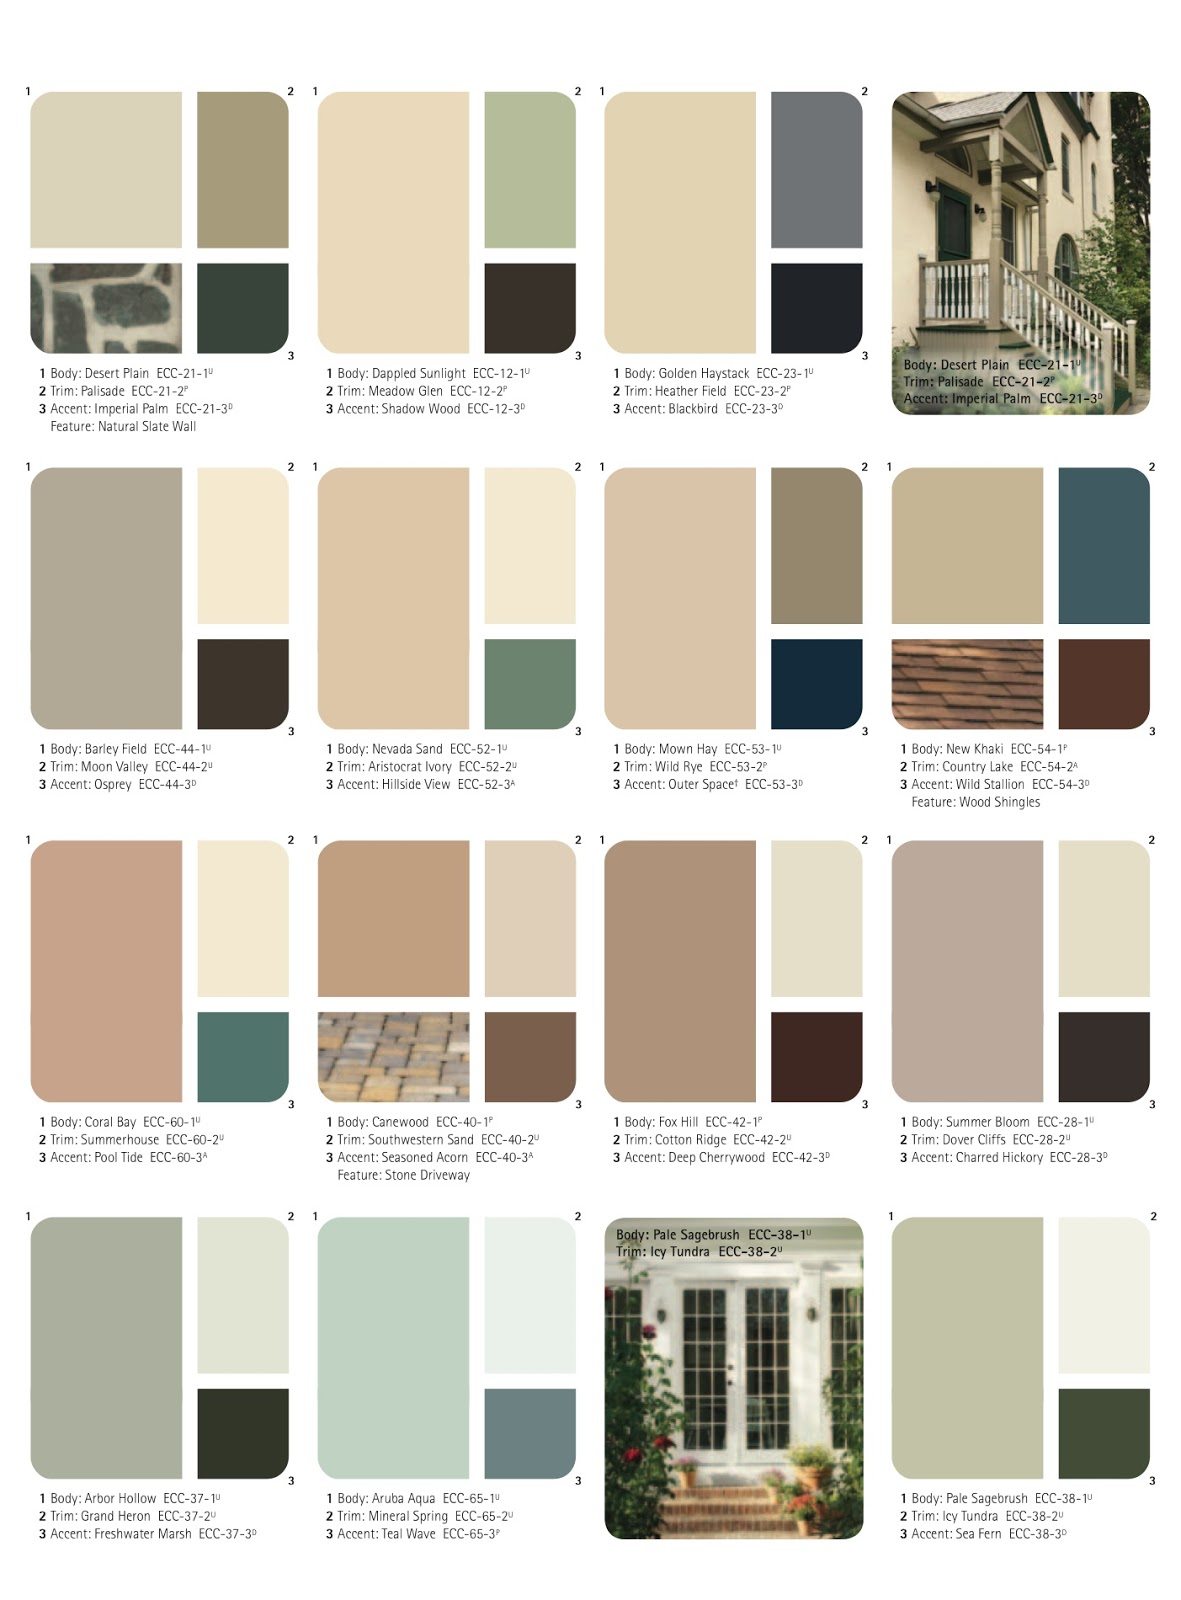 Shell white paint color sw 8917 by sherwin williams view interior and exterior paint colors and - Best exterior paint combinations model ...